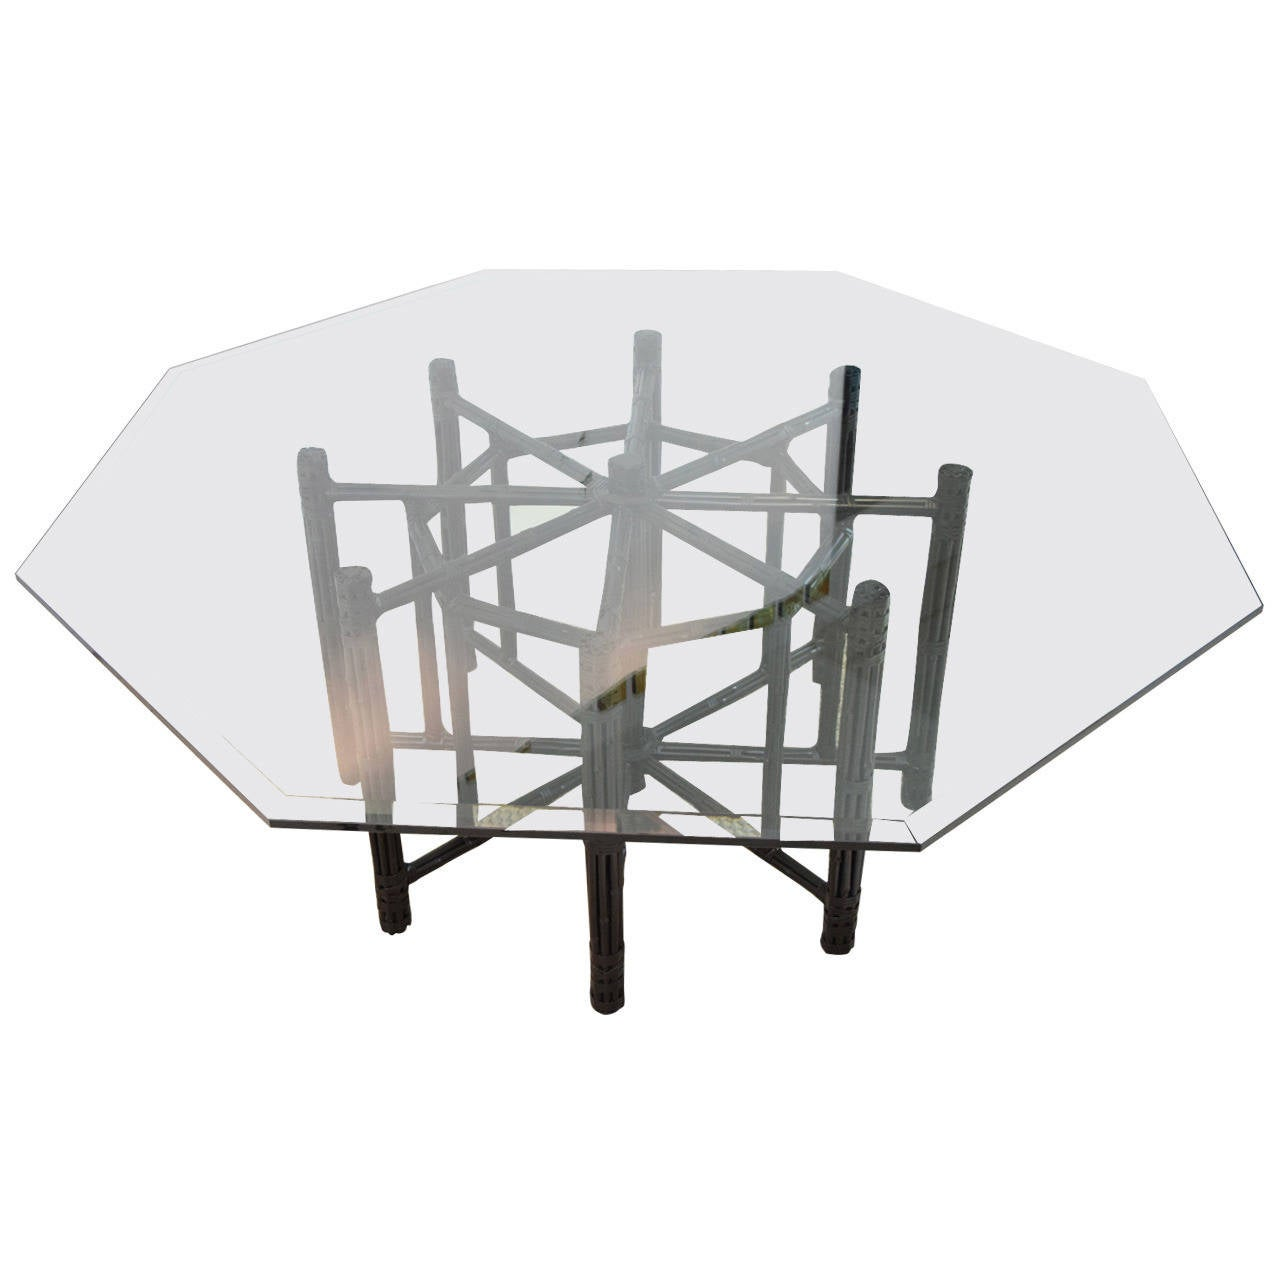 McGuire Bamboo Table with Octagon Glass Top at 1stdibs : 2113452l from www.1stdibs.com size 1280 x 1280 jpeg 59kB